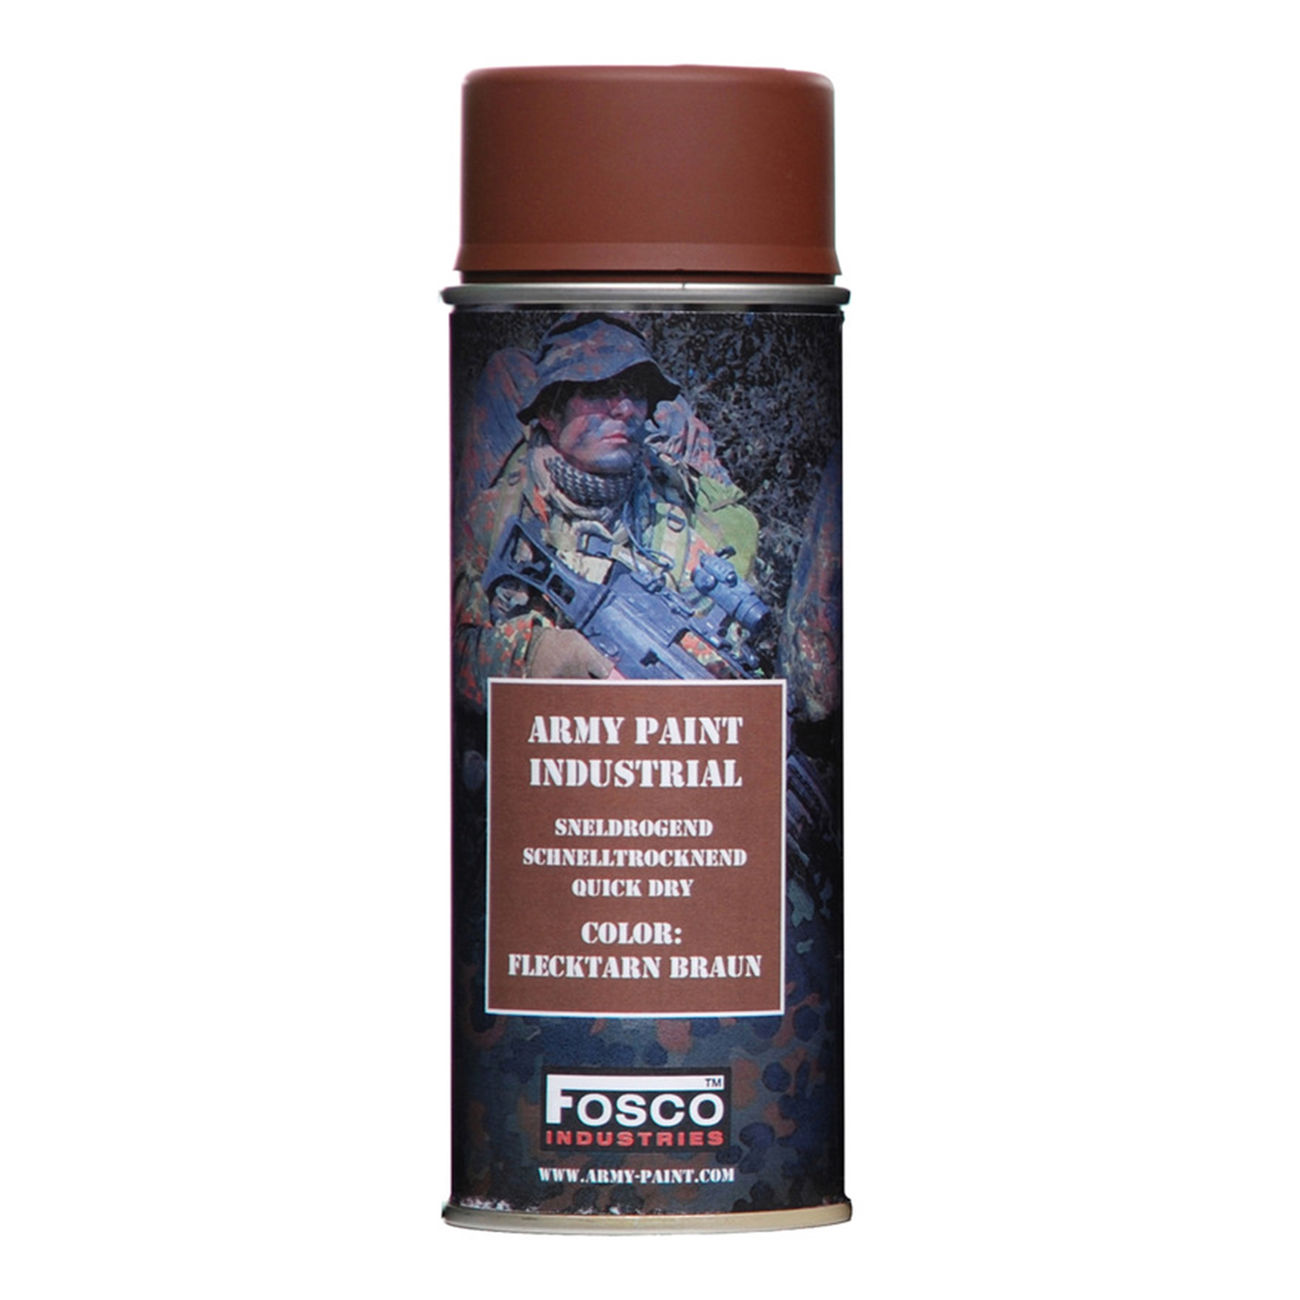 Fosco Army Paint Sprühfarbe flecktarn braun 400ml 0